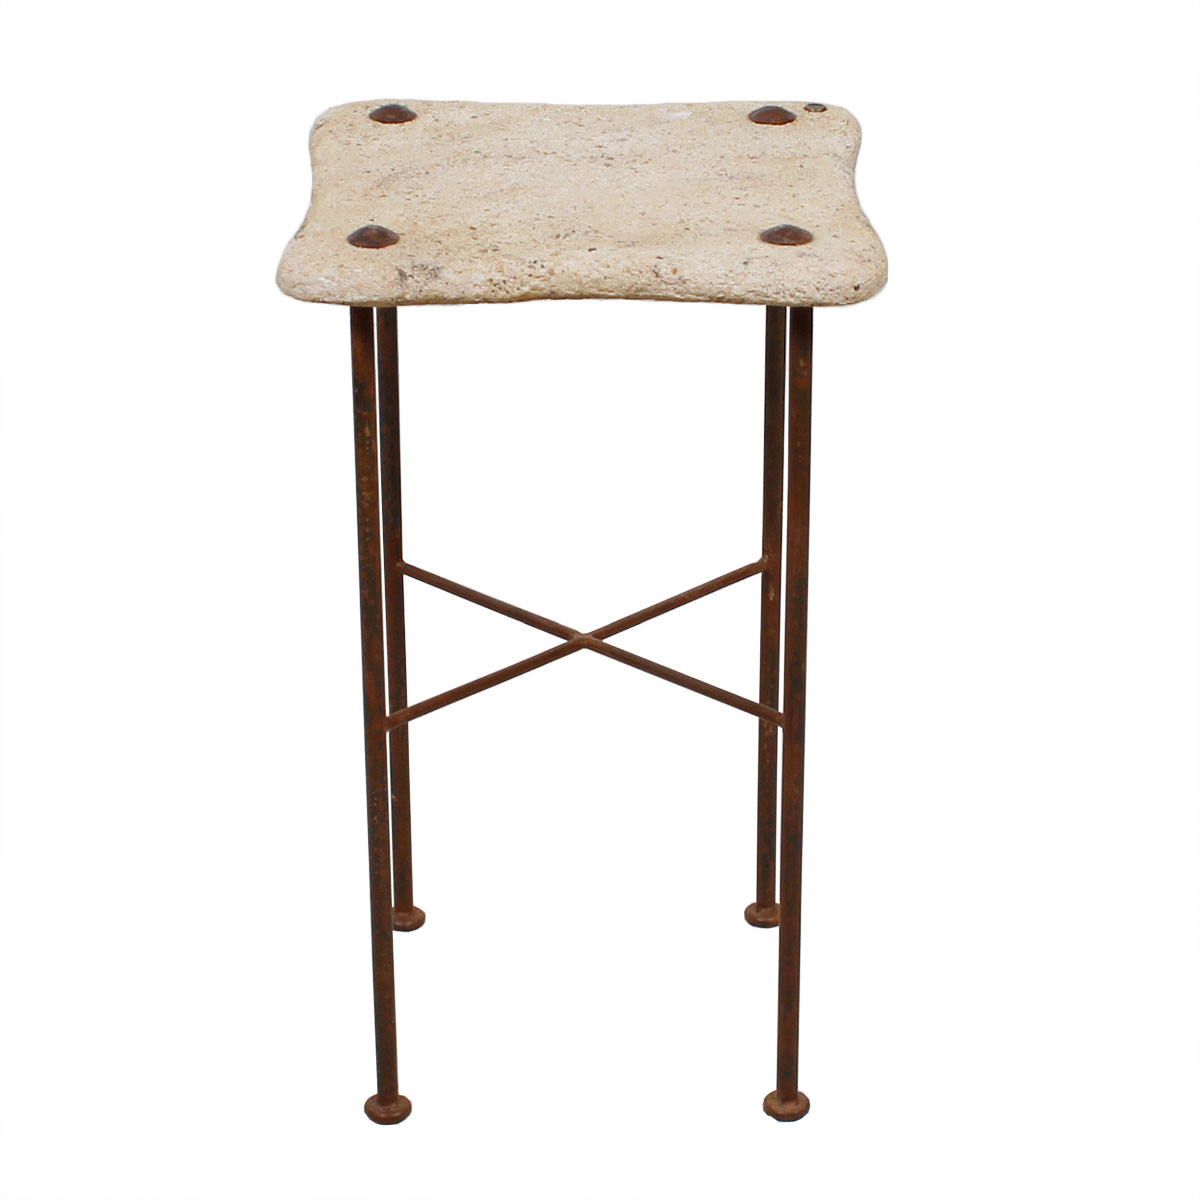 Tall Decorator Accent / Pedestal Table